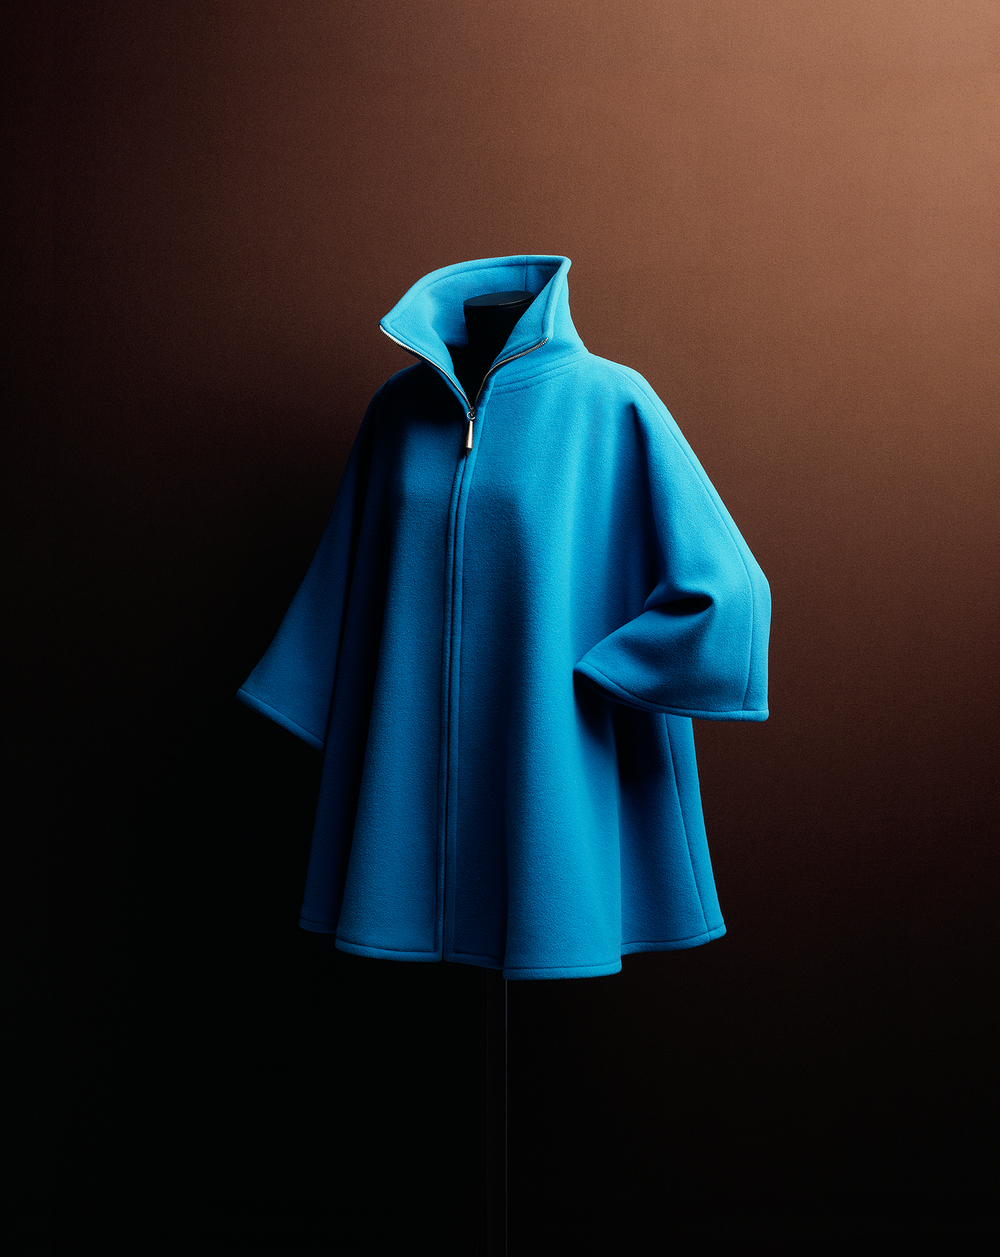 the_tree_mag-coats-by-maxmara-by-dhyan-bodha-derasmo-g-80.jpg